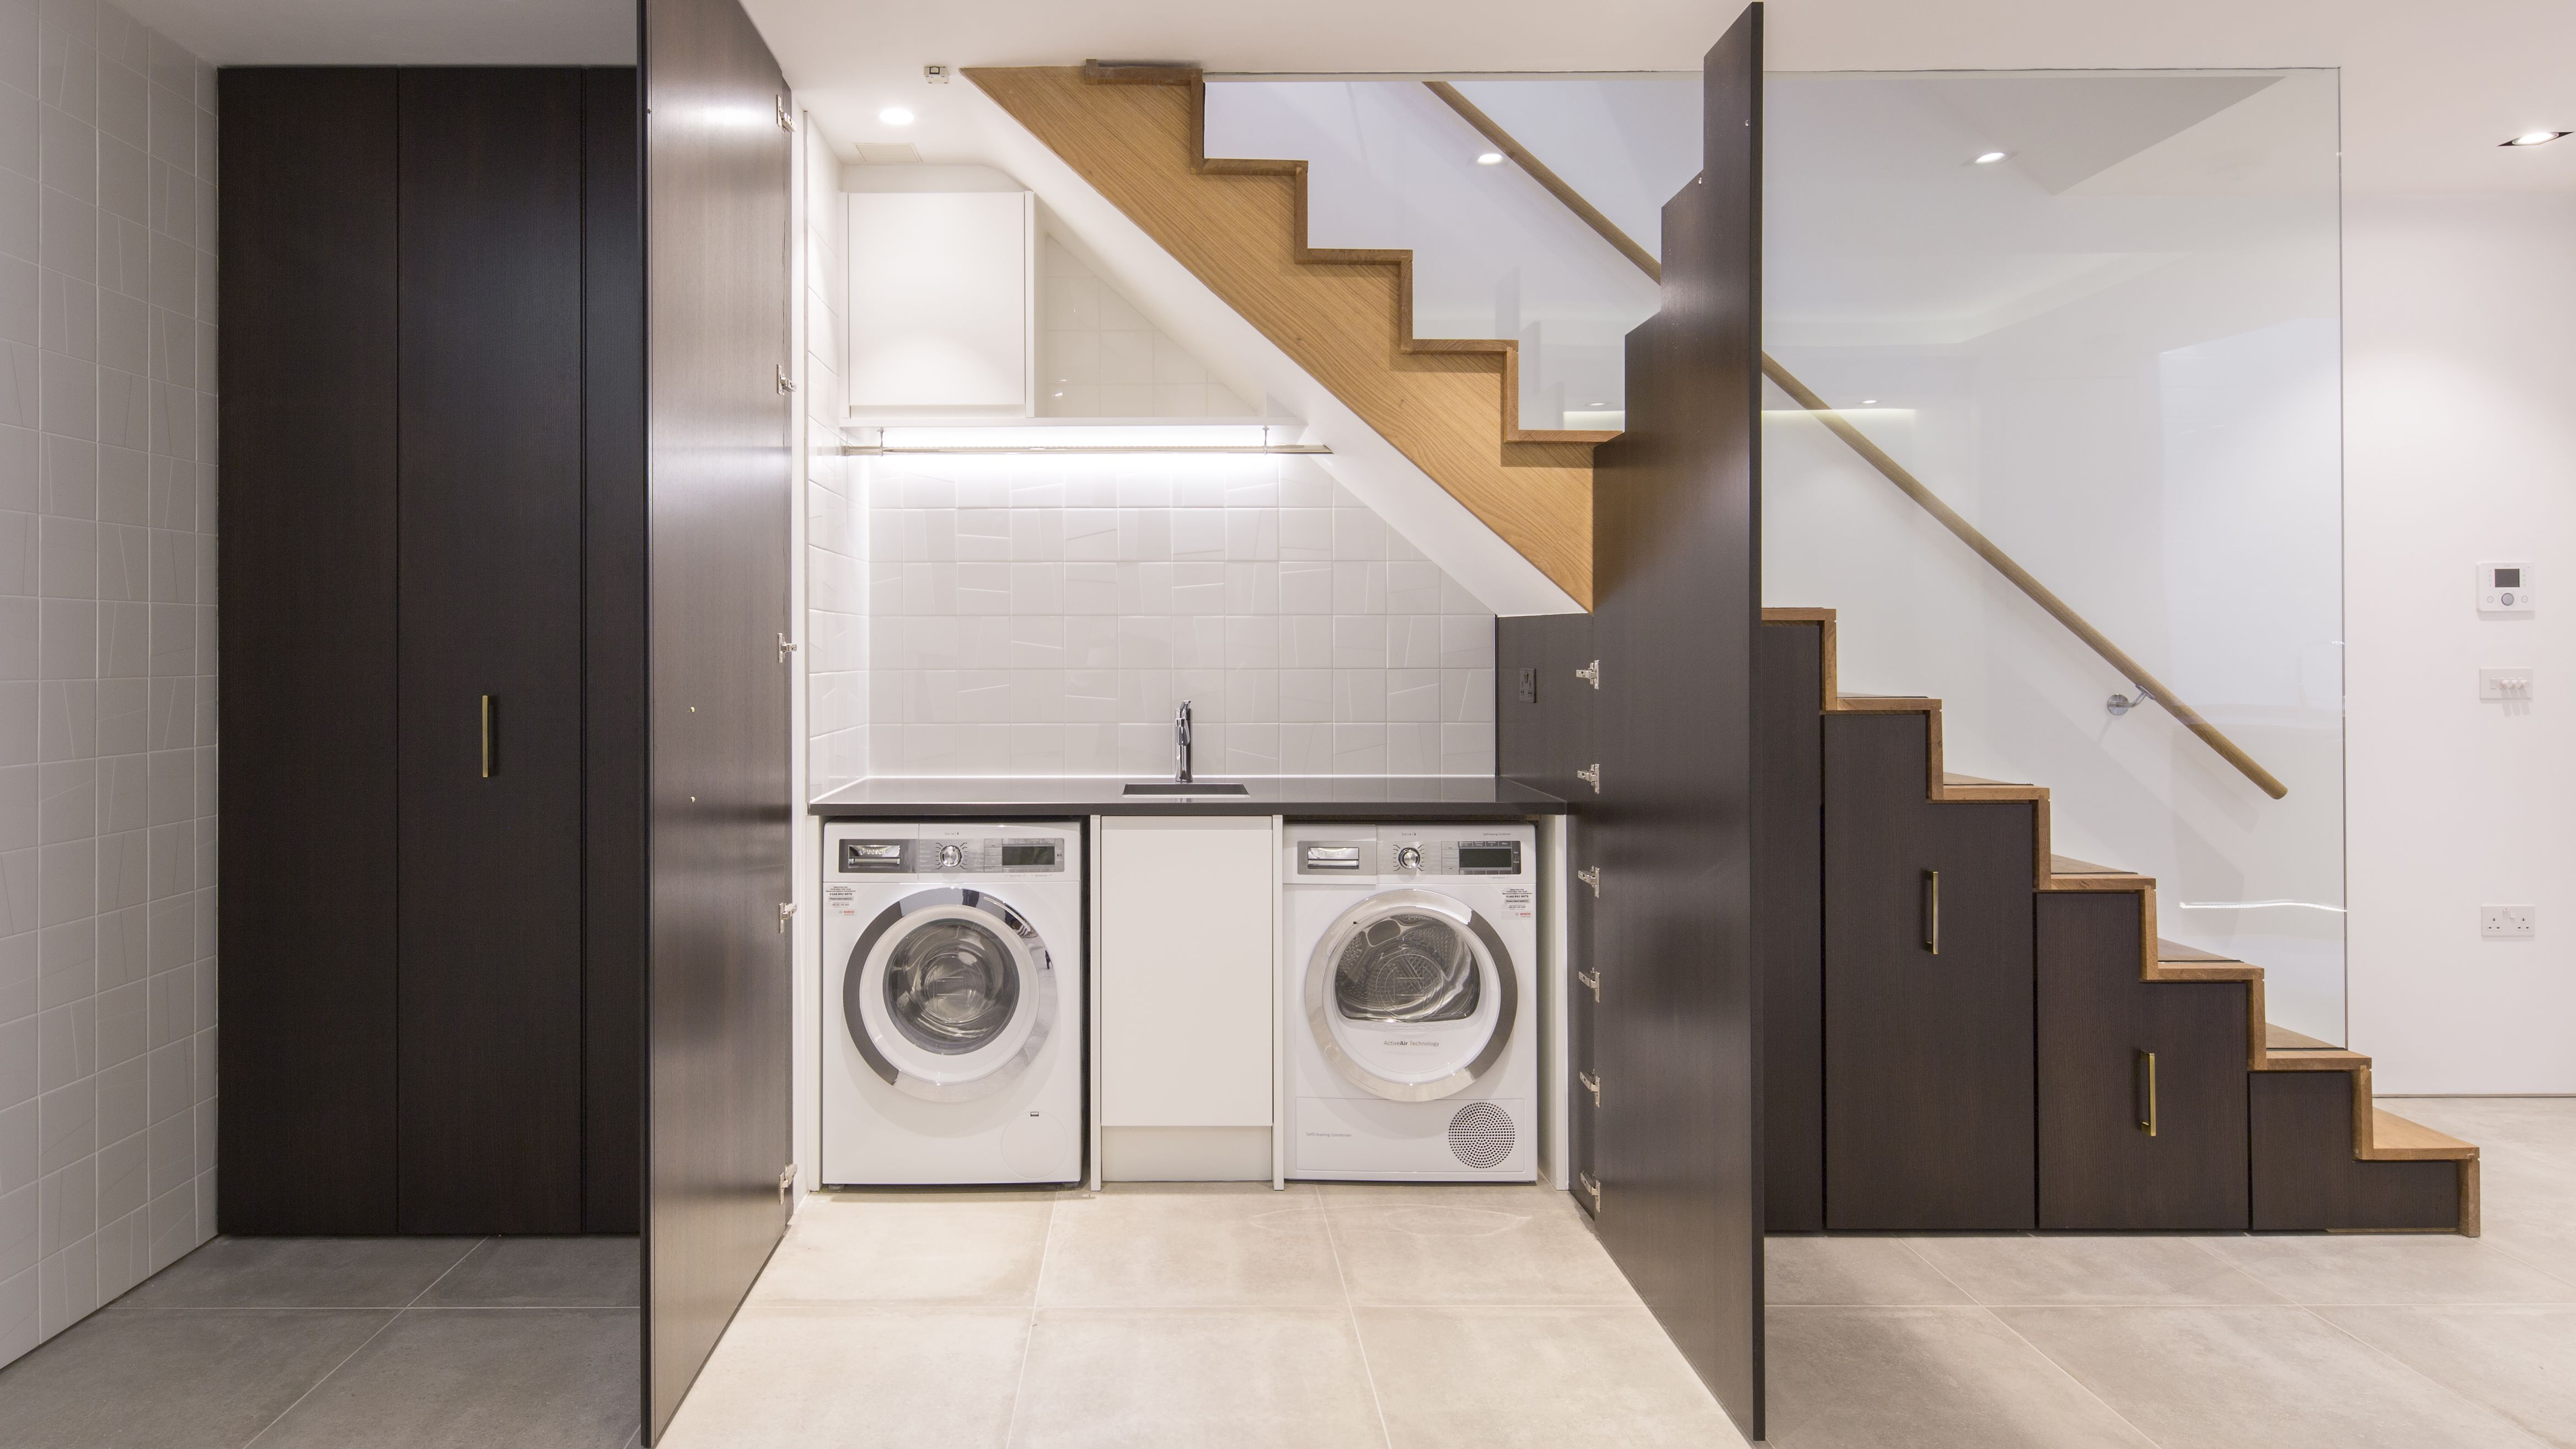 11 small utility room ideas images